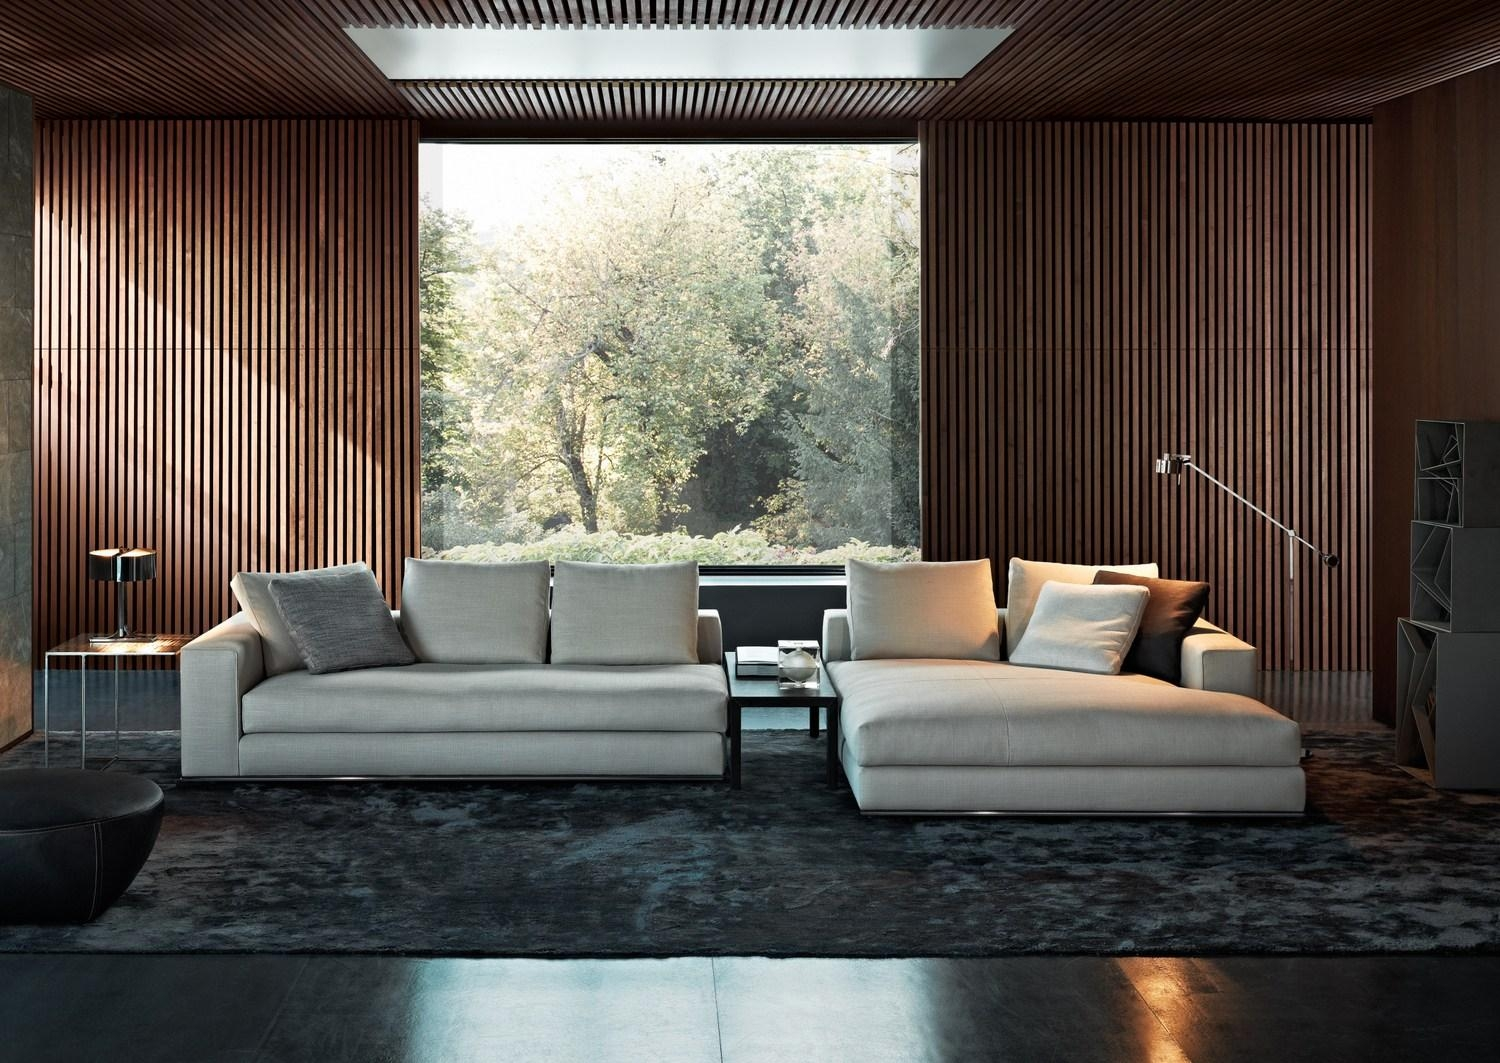 Hamiltonminotti Within Hamilton Sofas (View 19 of 20)